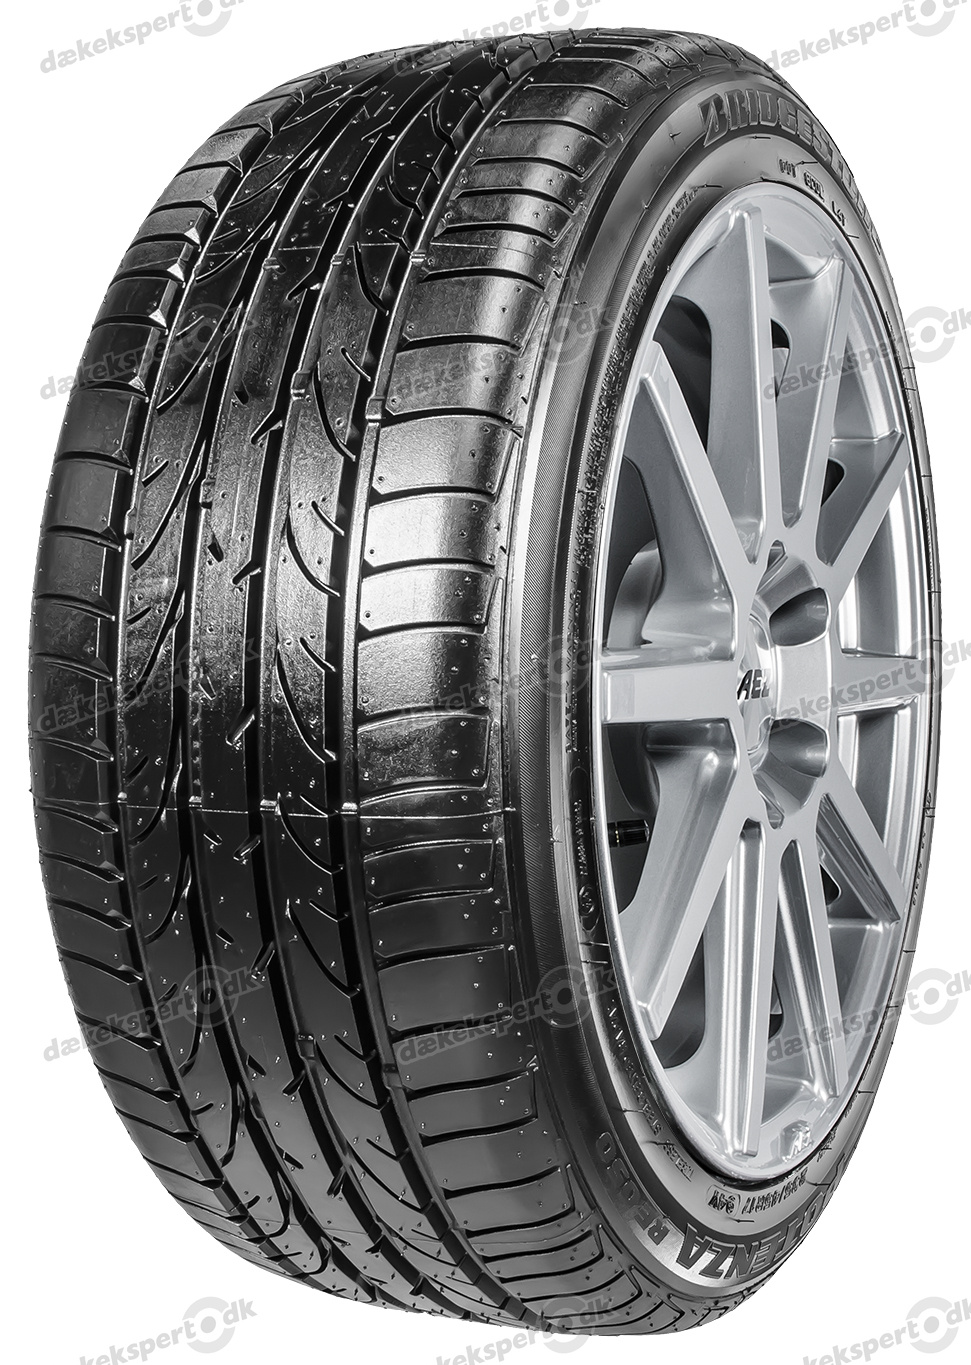 225/50 R17 94W Potenza RE 050 RFT *  Potenza RE 050 RFT *